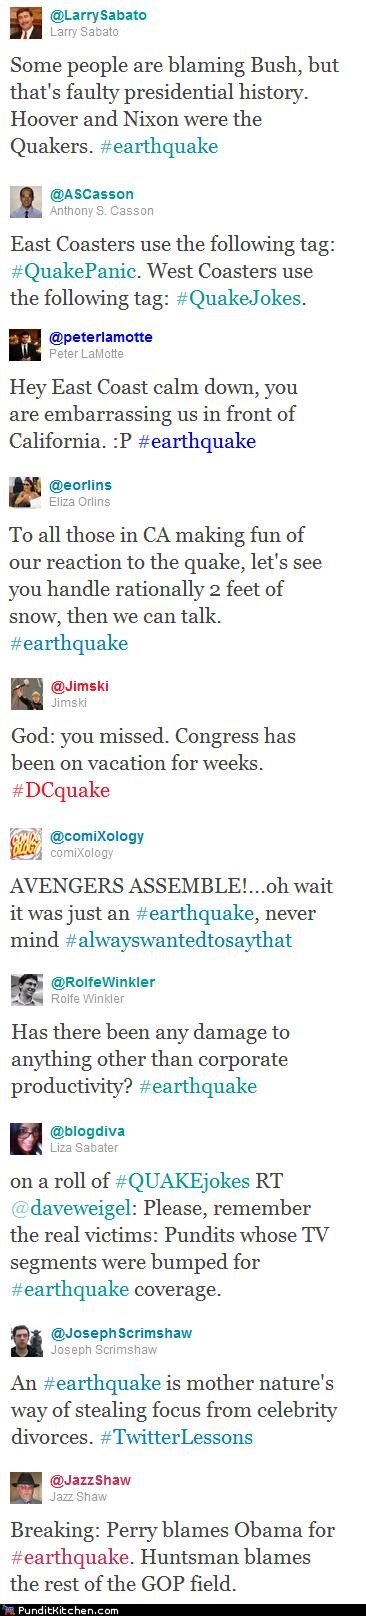 earthquake east coast new york city political pictures twitter twitterpated virginia washington dc - 5121399552